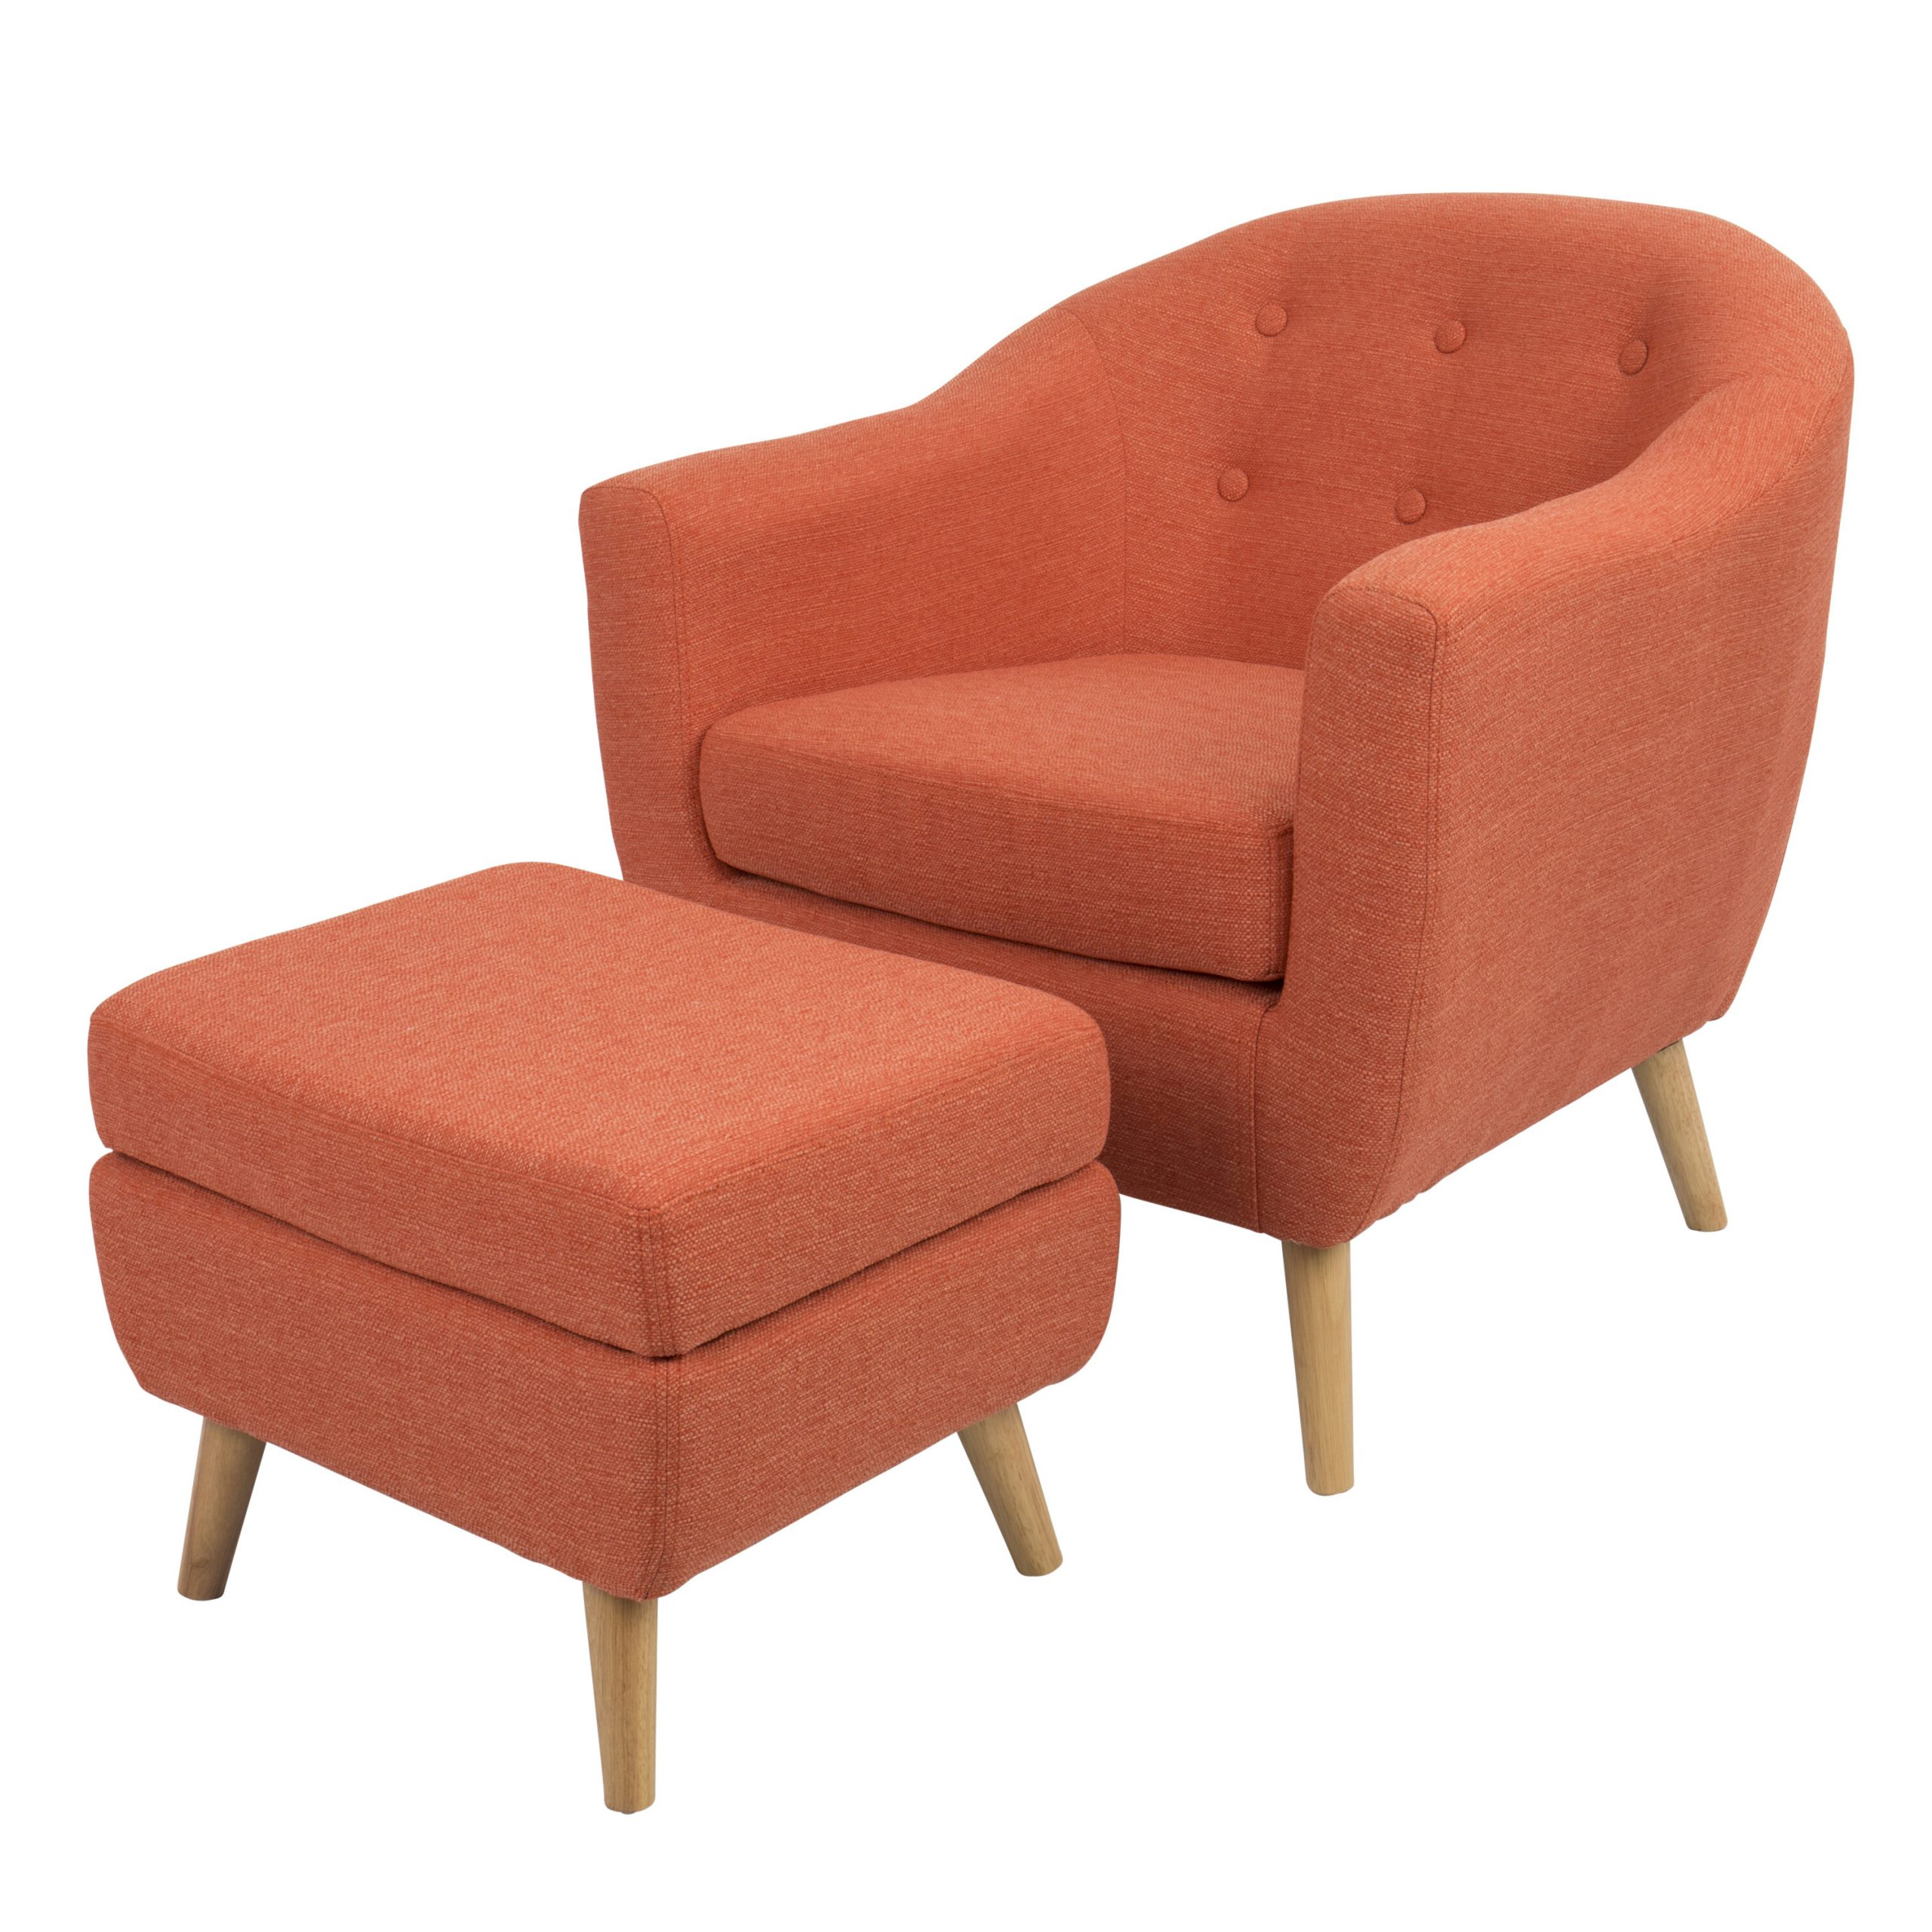 2019 Harmon Cloud Barrel Chair And Ottoman Pertaining To Dorcaster Barrel Chairs (View 4 of 20)